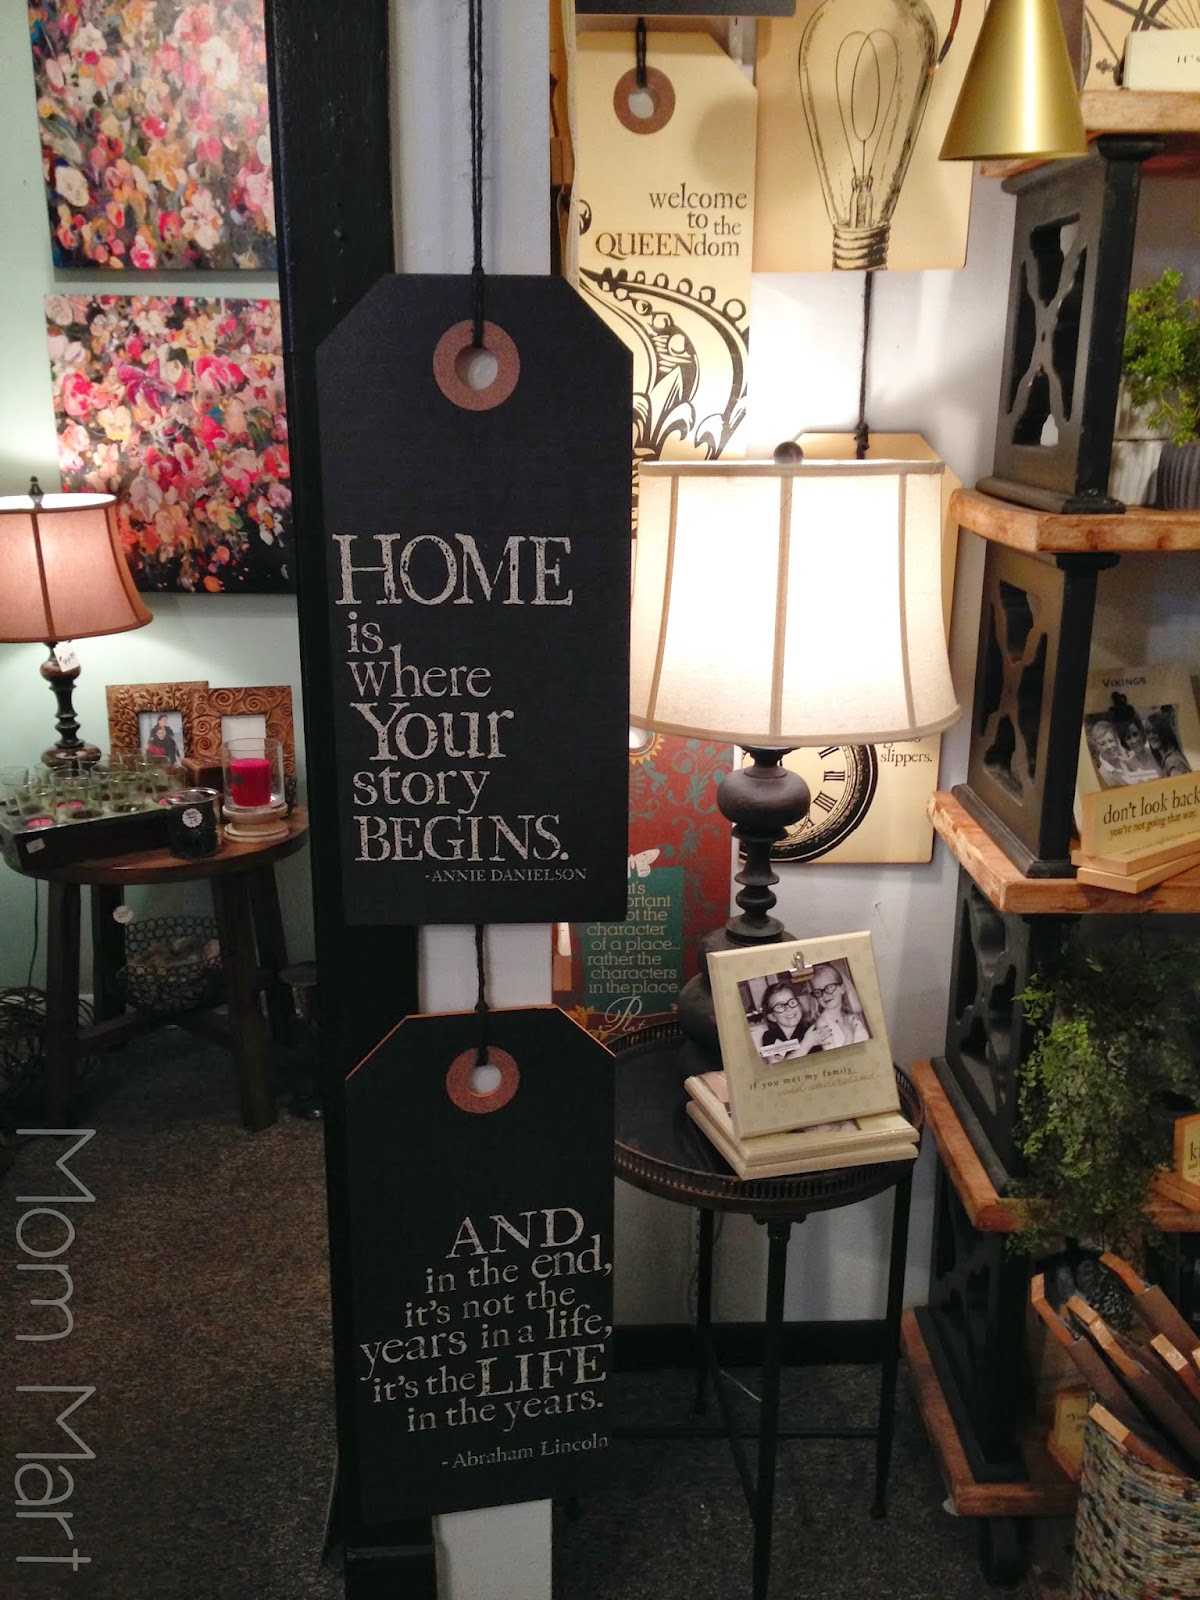 Shopping for home goods #Shopping #ForTheHome #Decorate #InspirationalQuote #HomeDecor